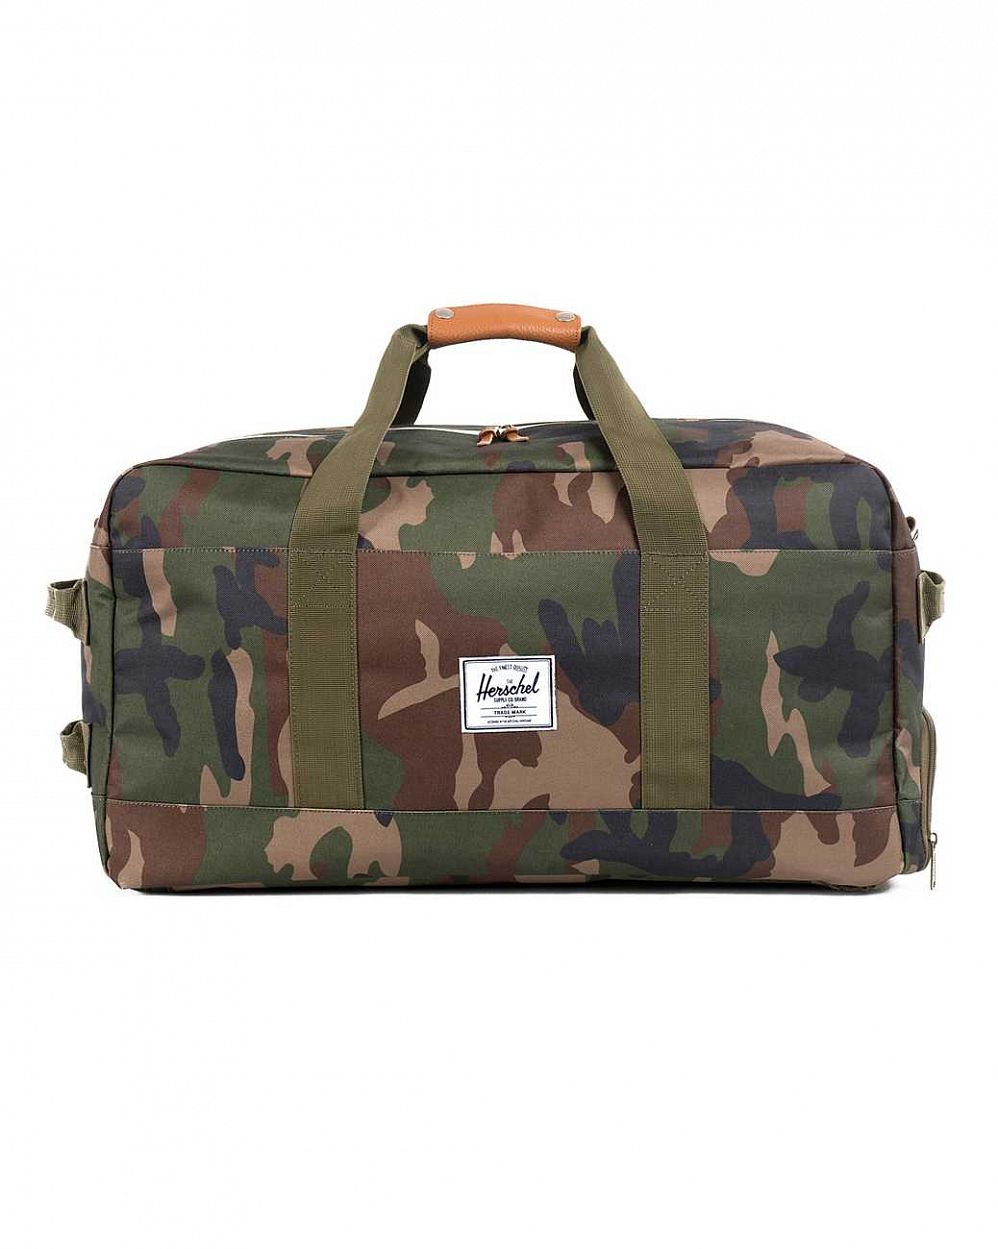 купить Сумка Herschel Outfitter Woodland Camo Orange Rubber в Москве